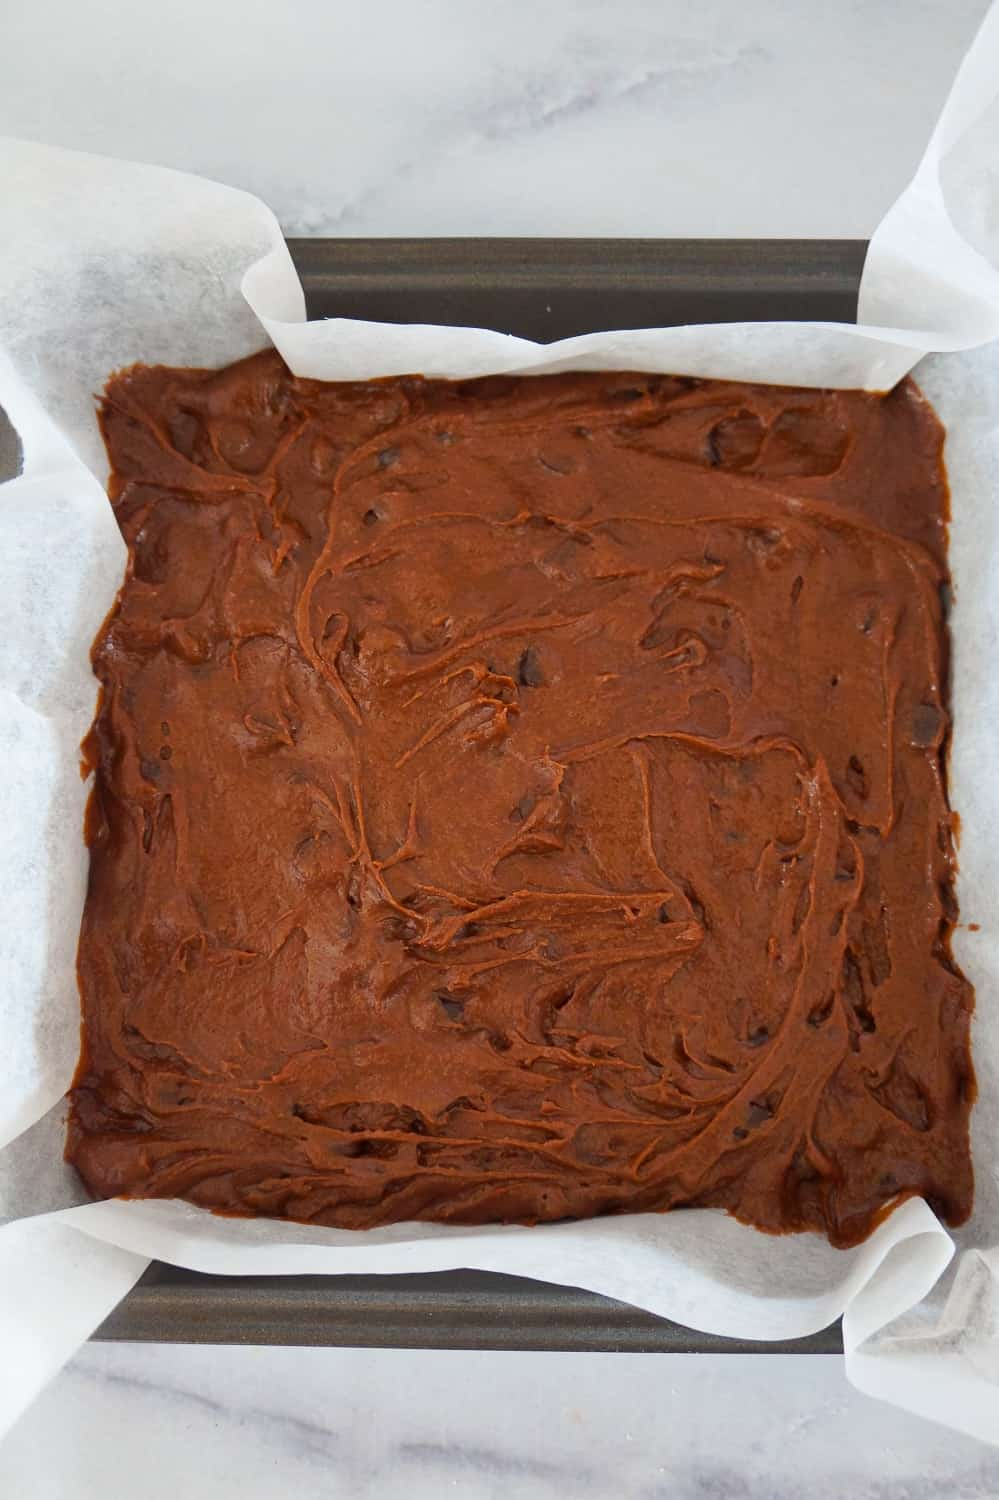 brownie batter in a parchment lined baking pan